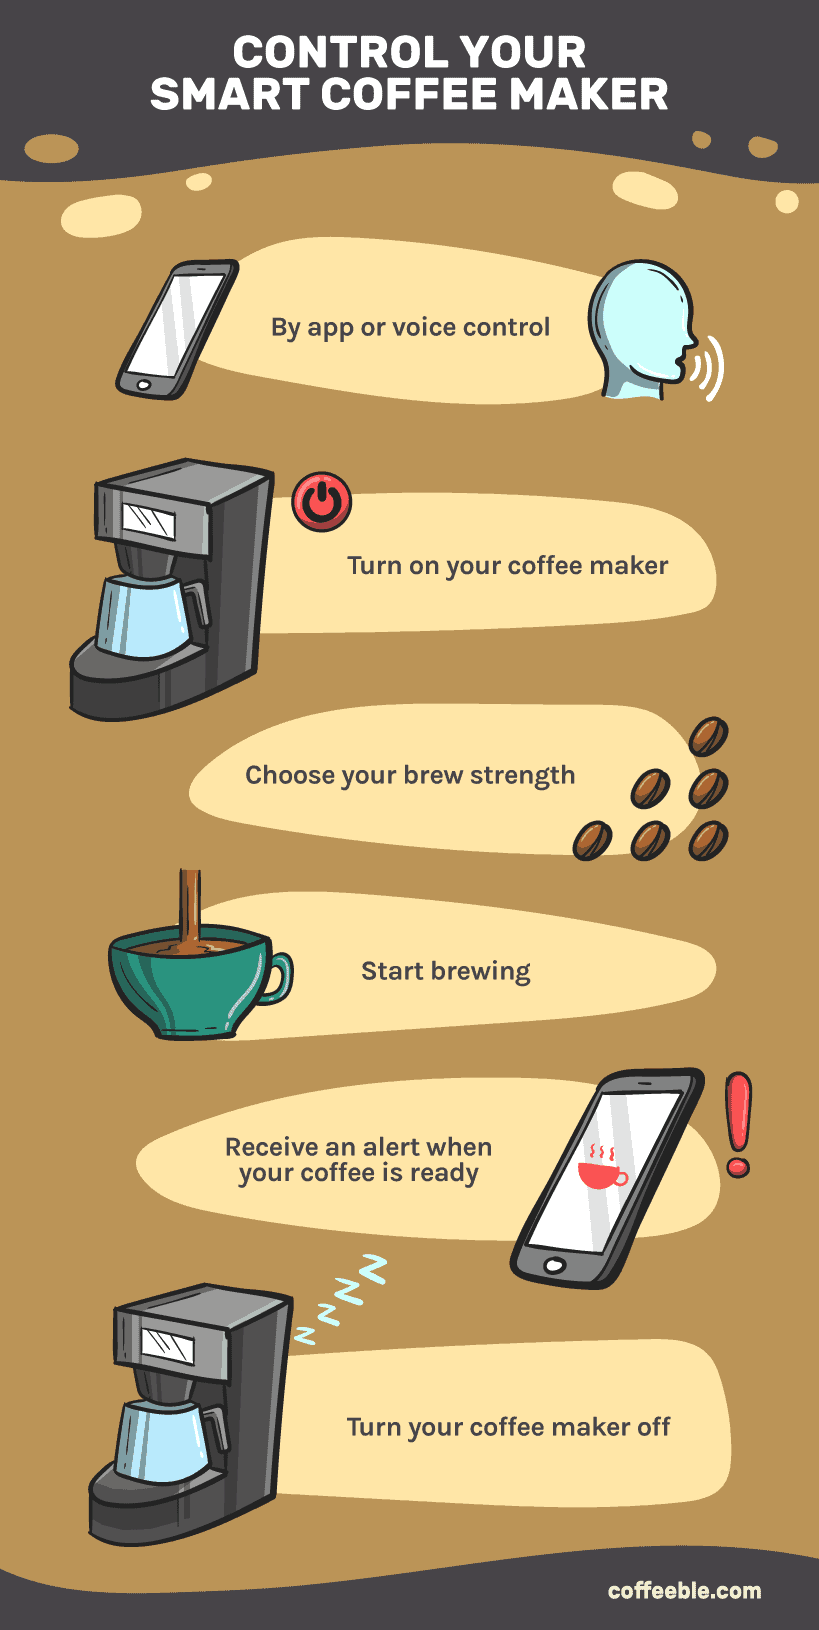 control your smart coffee maker